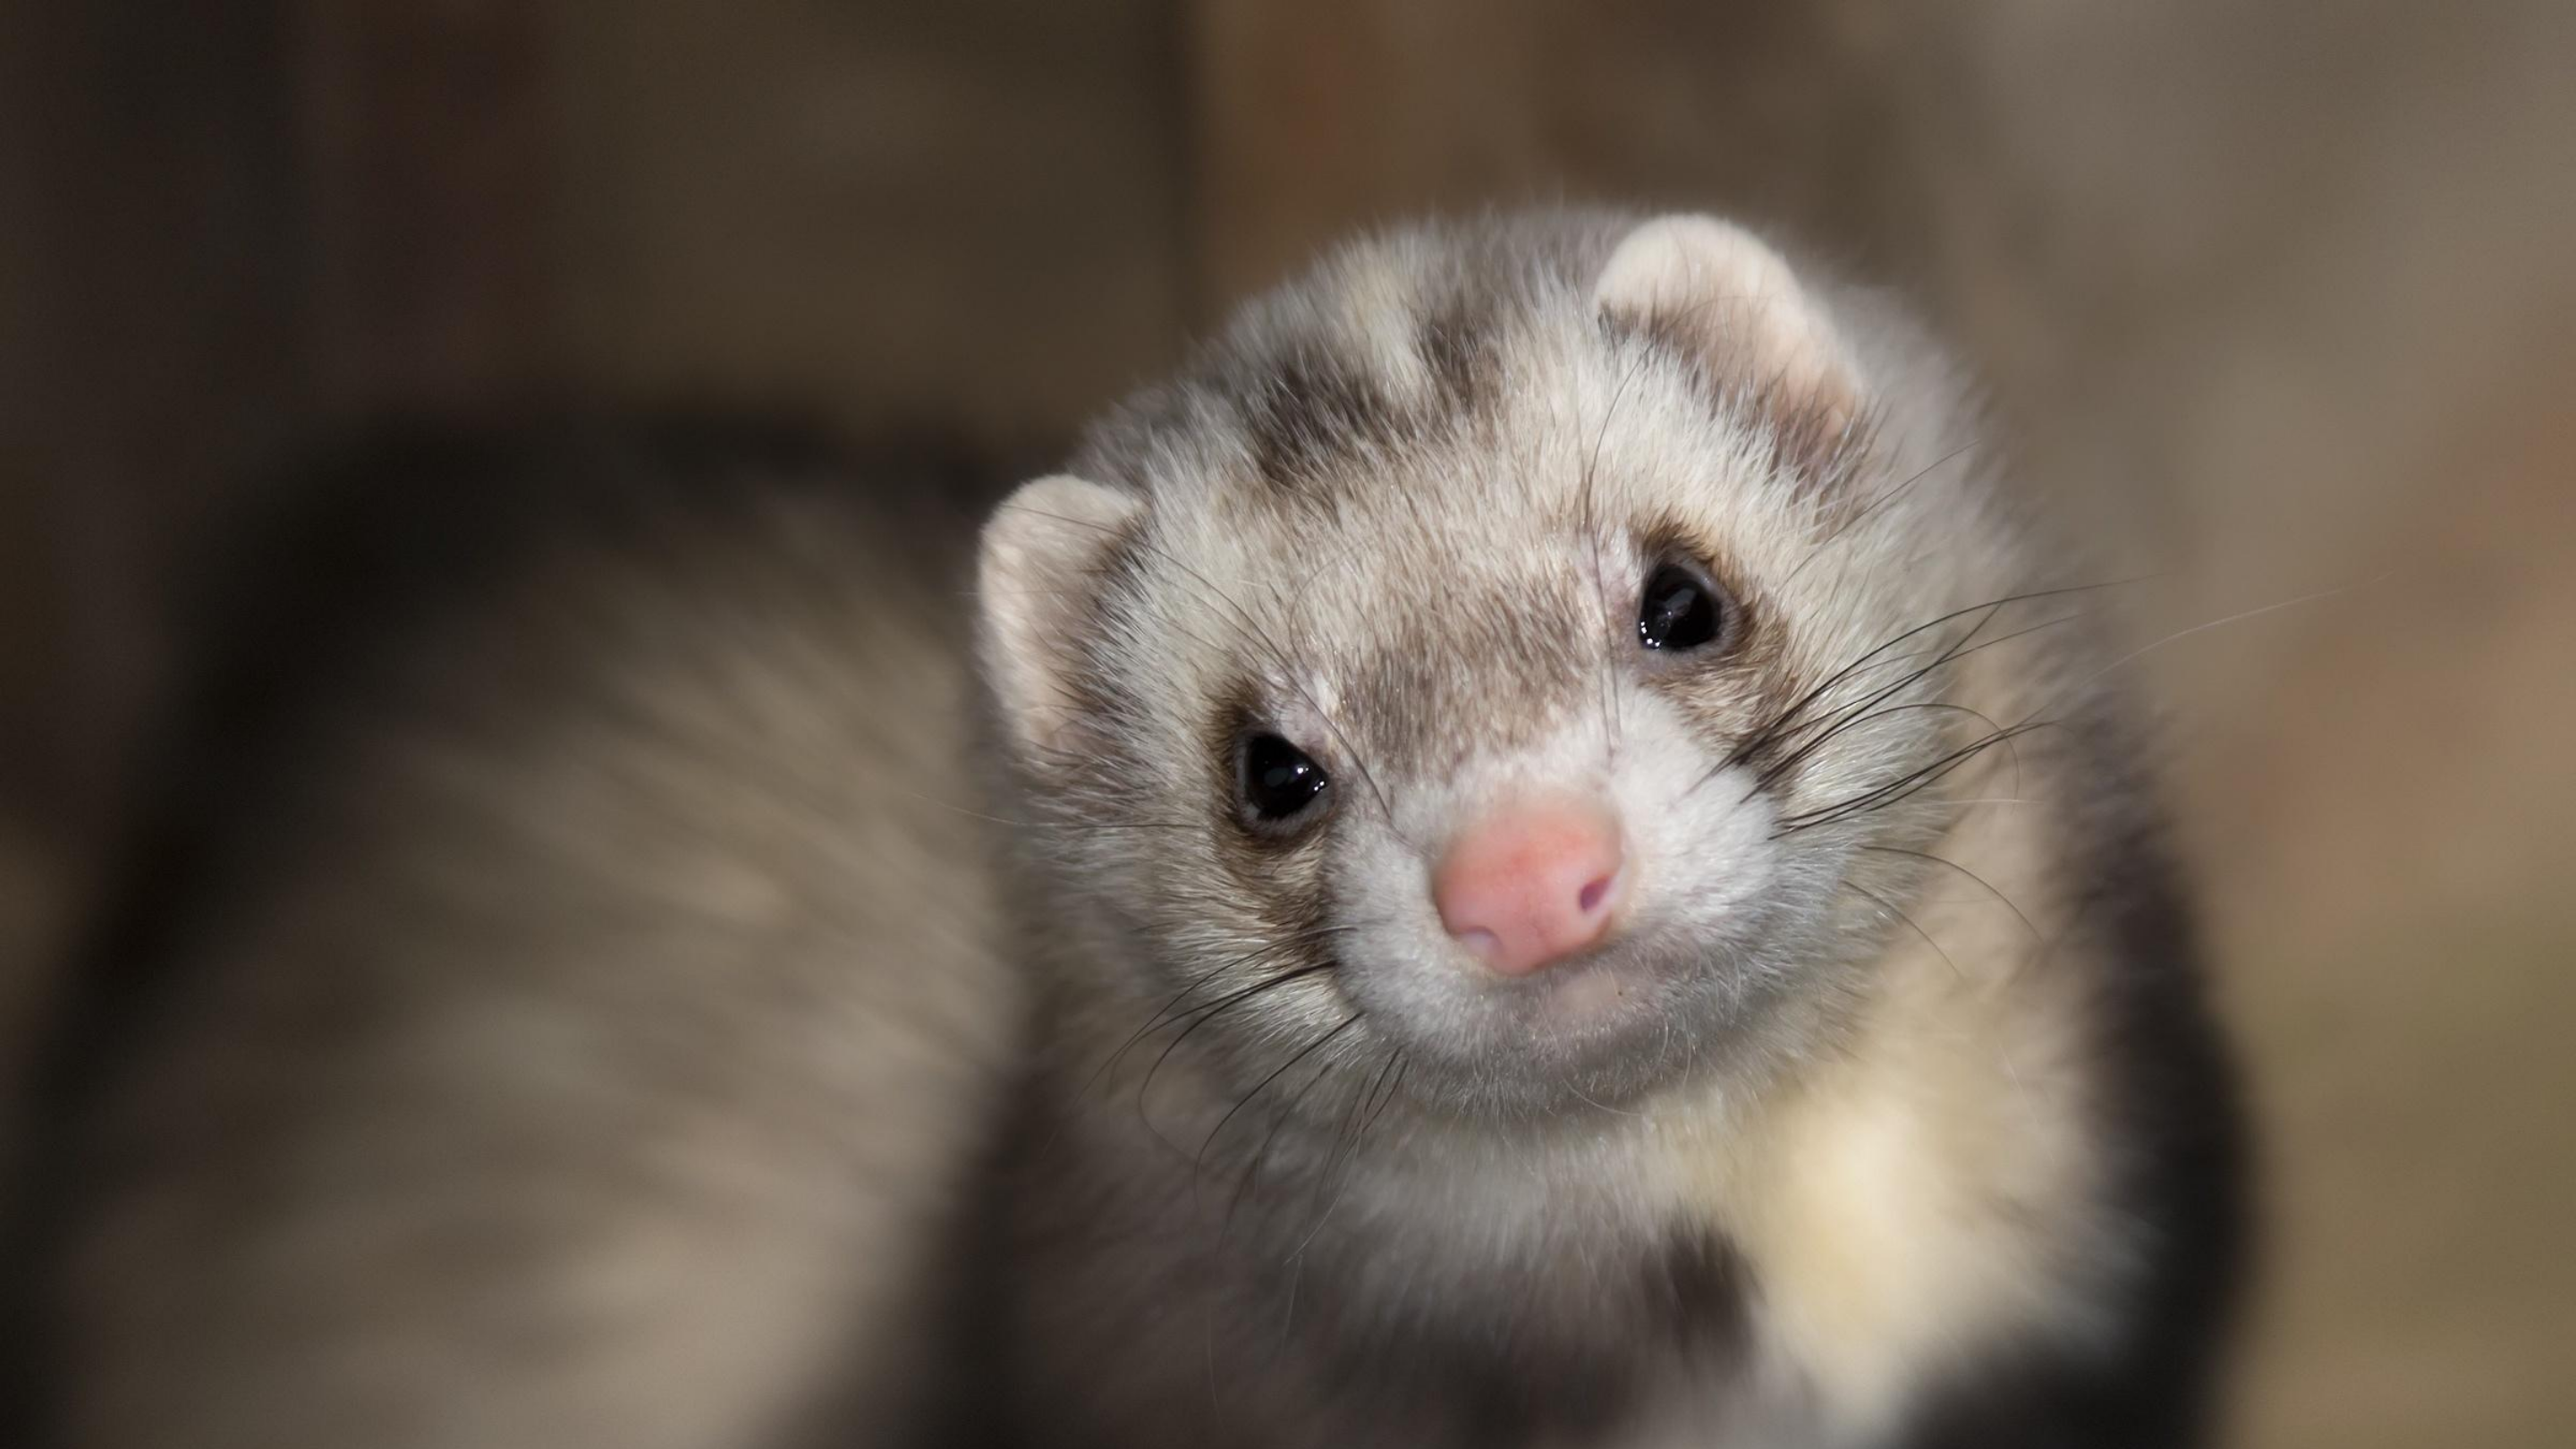 A close up of a ferret's face